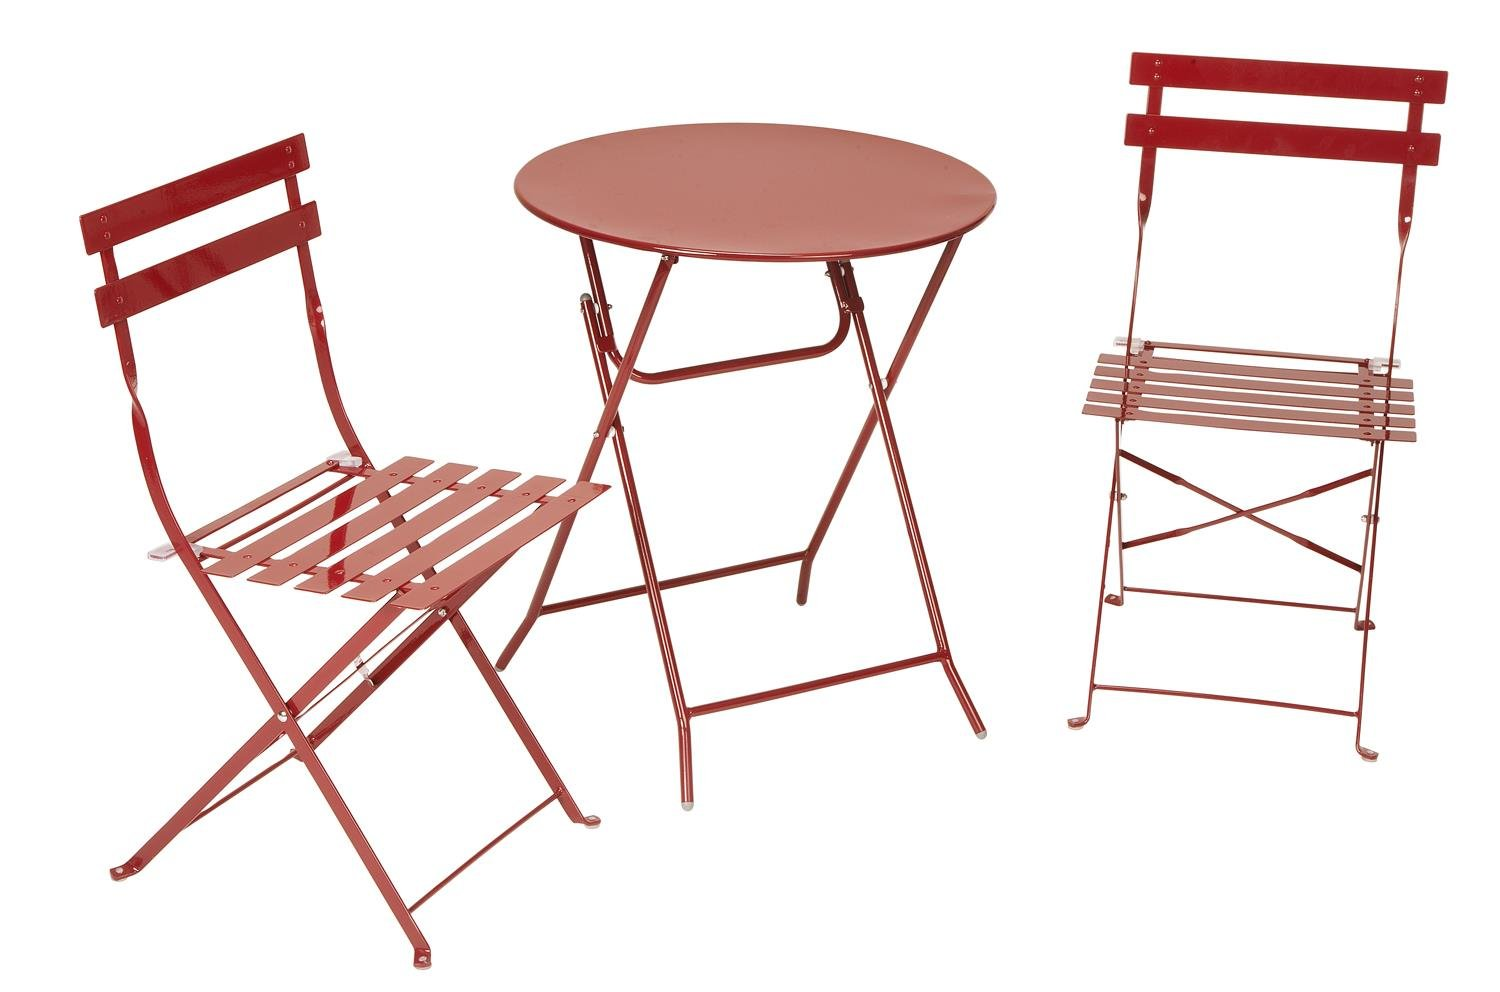 Cosco Outdoor Bistro Set, 3 Piece, Folding, Red by Cosco Outdoor Living (Image #2)